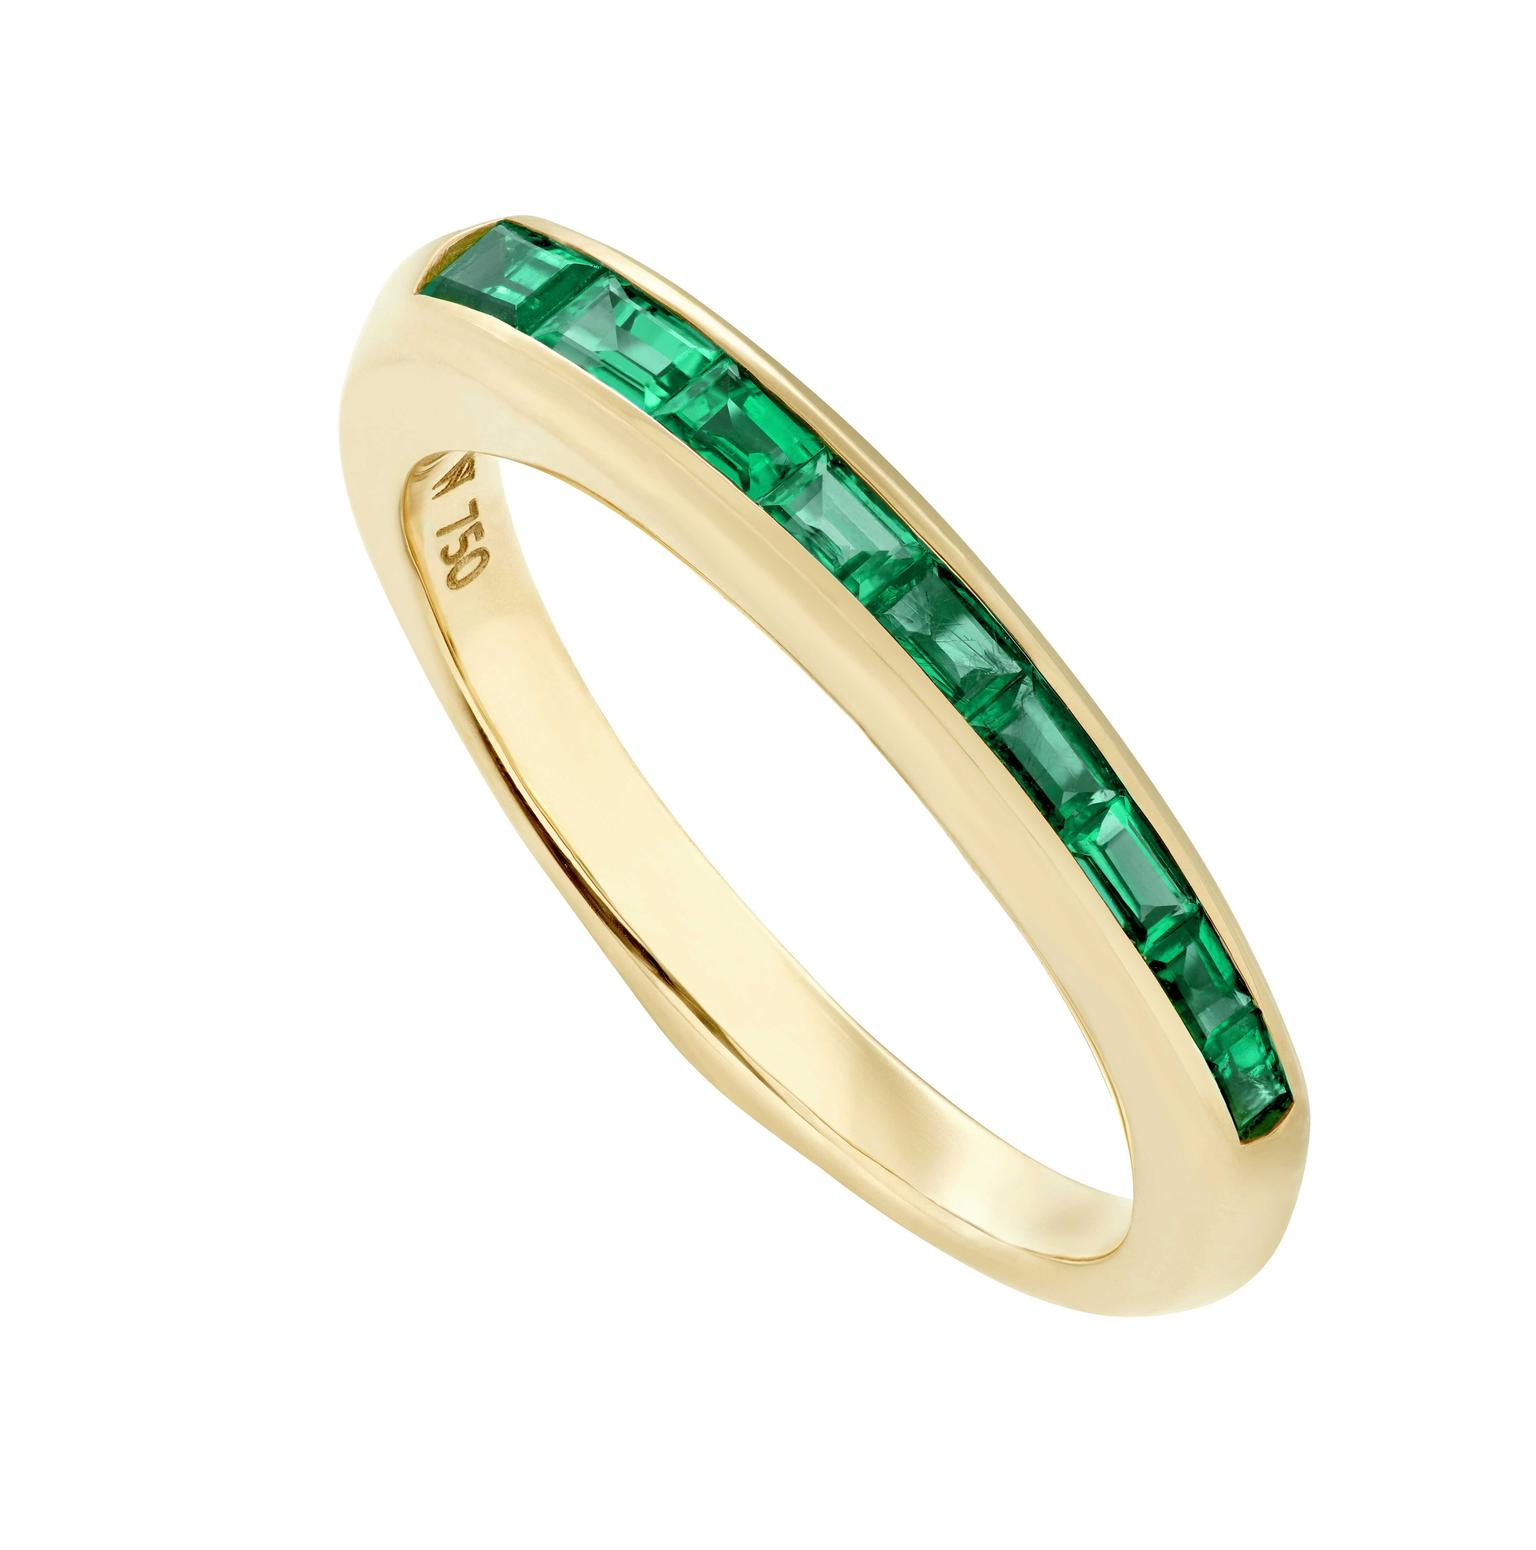 Stephen Webster CH2 Shard baguette stacking ring emeralds